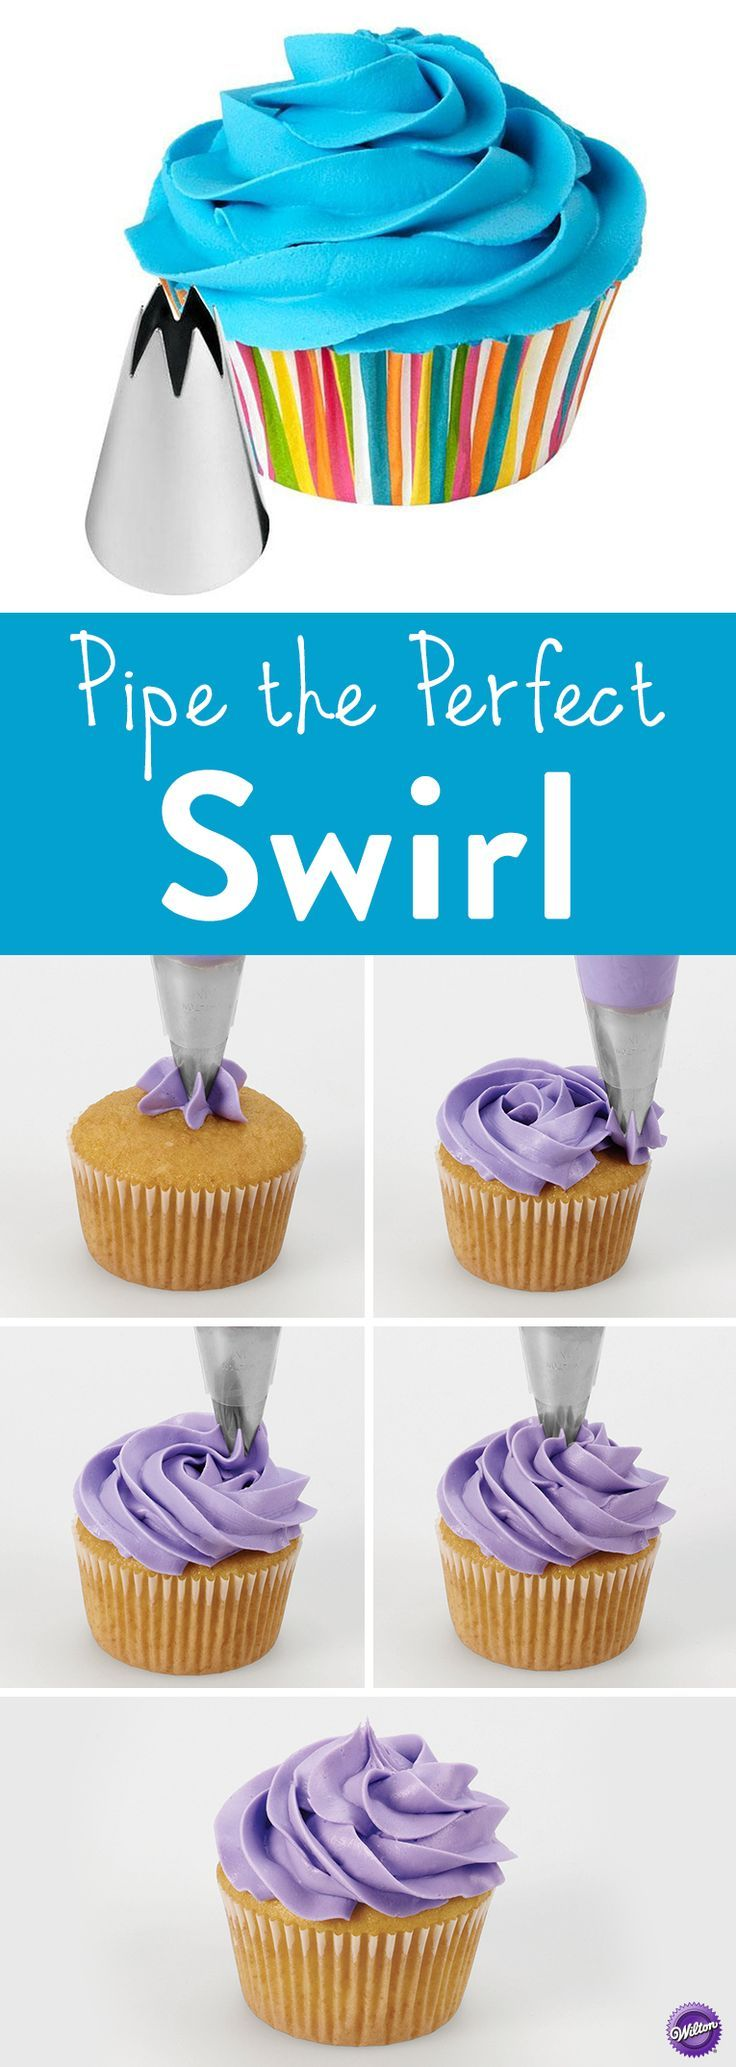 How to Pipe the Perfect Swirl - Here is another quick way to decorate your cupcakes or cakes. It just takes minutes to pipe a fancy iced swirl and add colorful sprinkles using Wilton decorating Tip 1M.